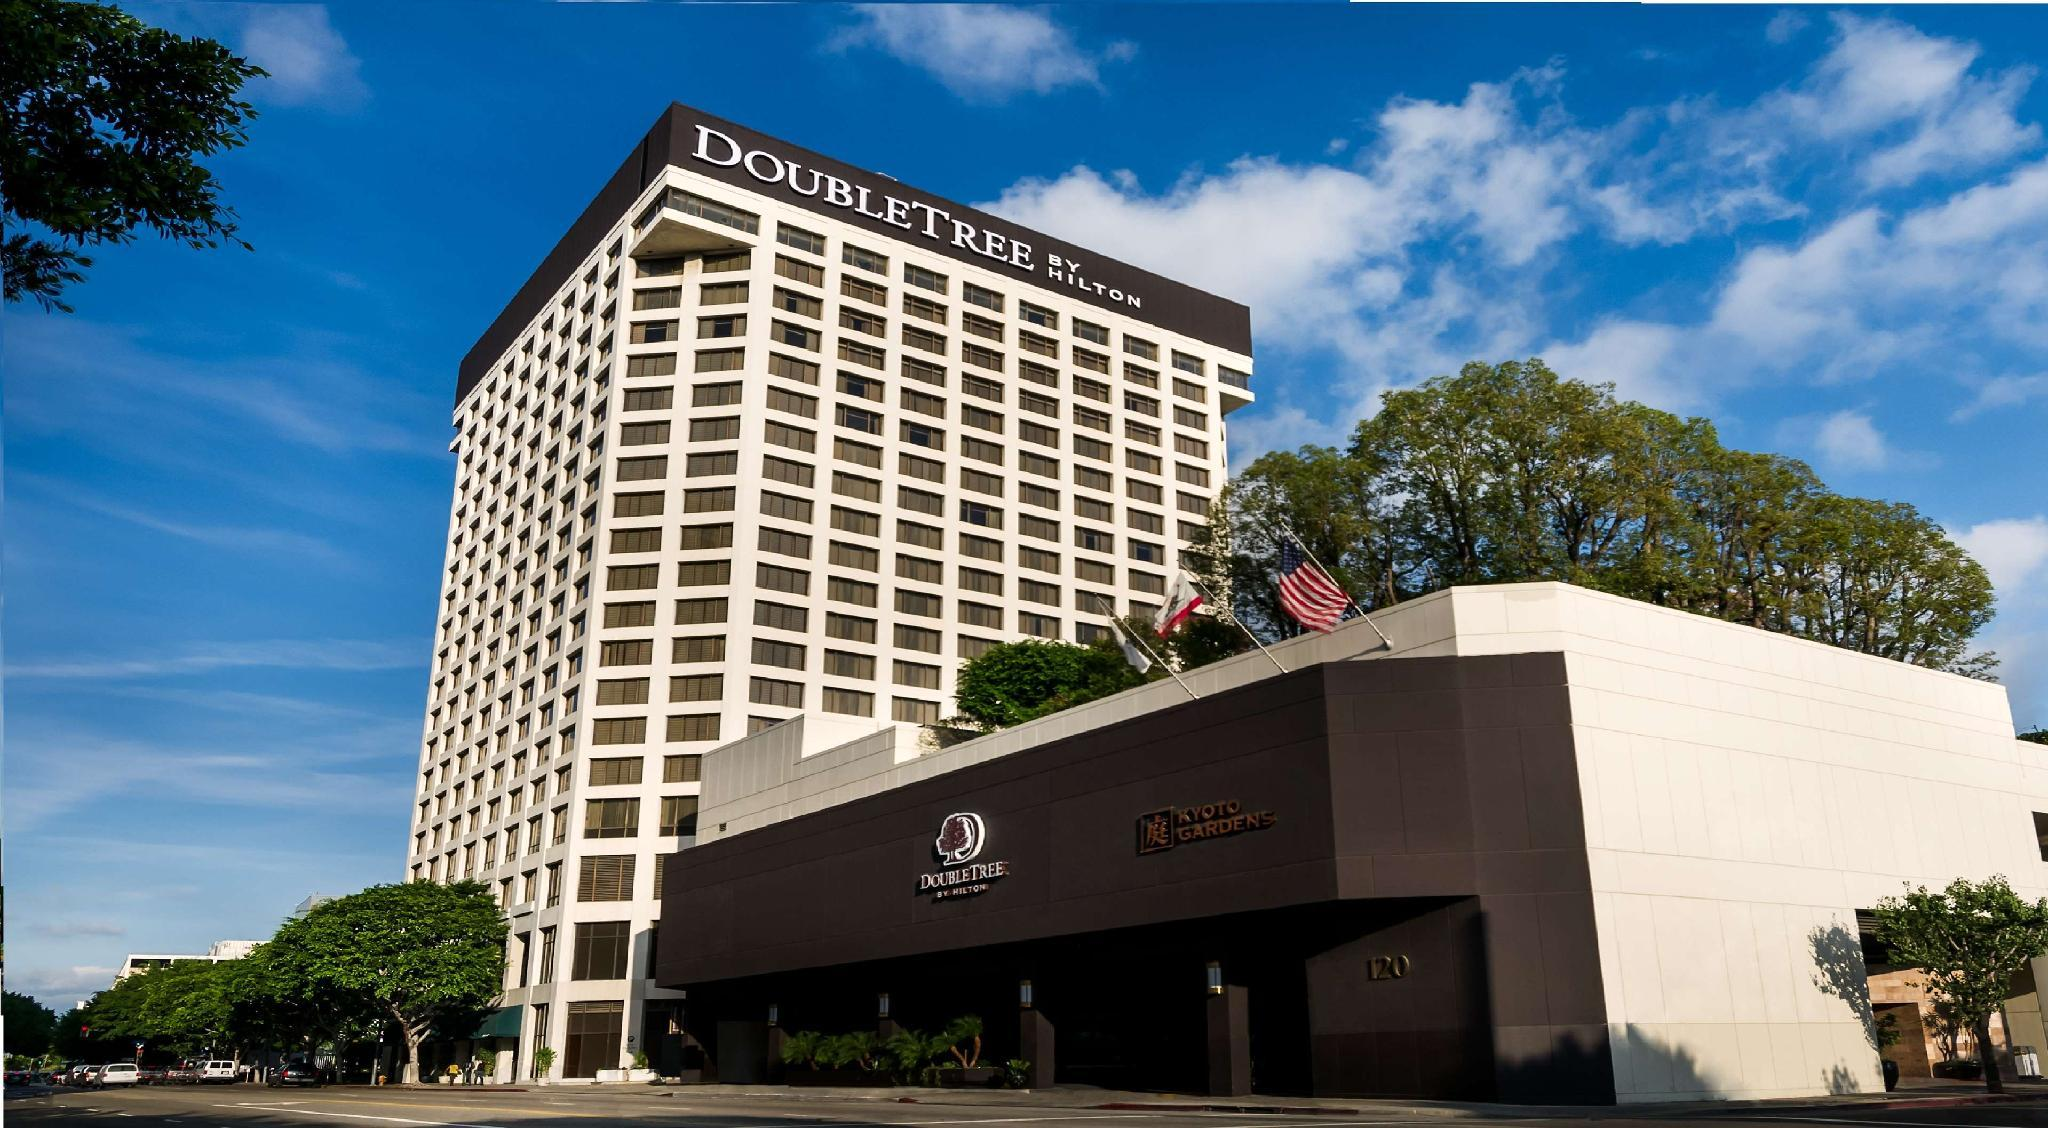 Doubletree by Hilton Los Angeles Downtown Hotel